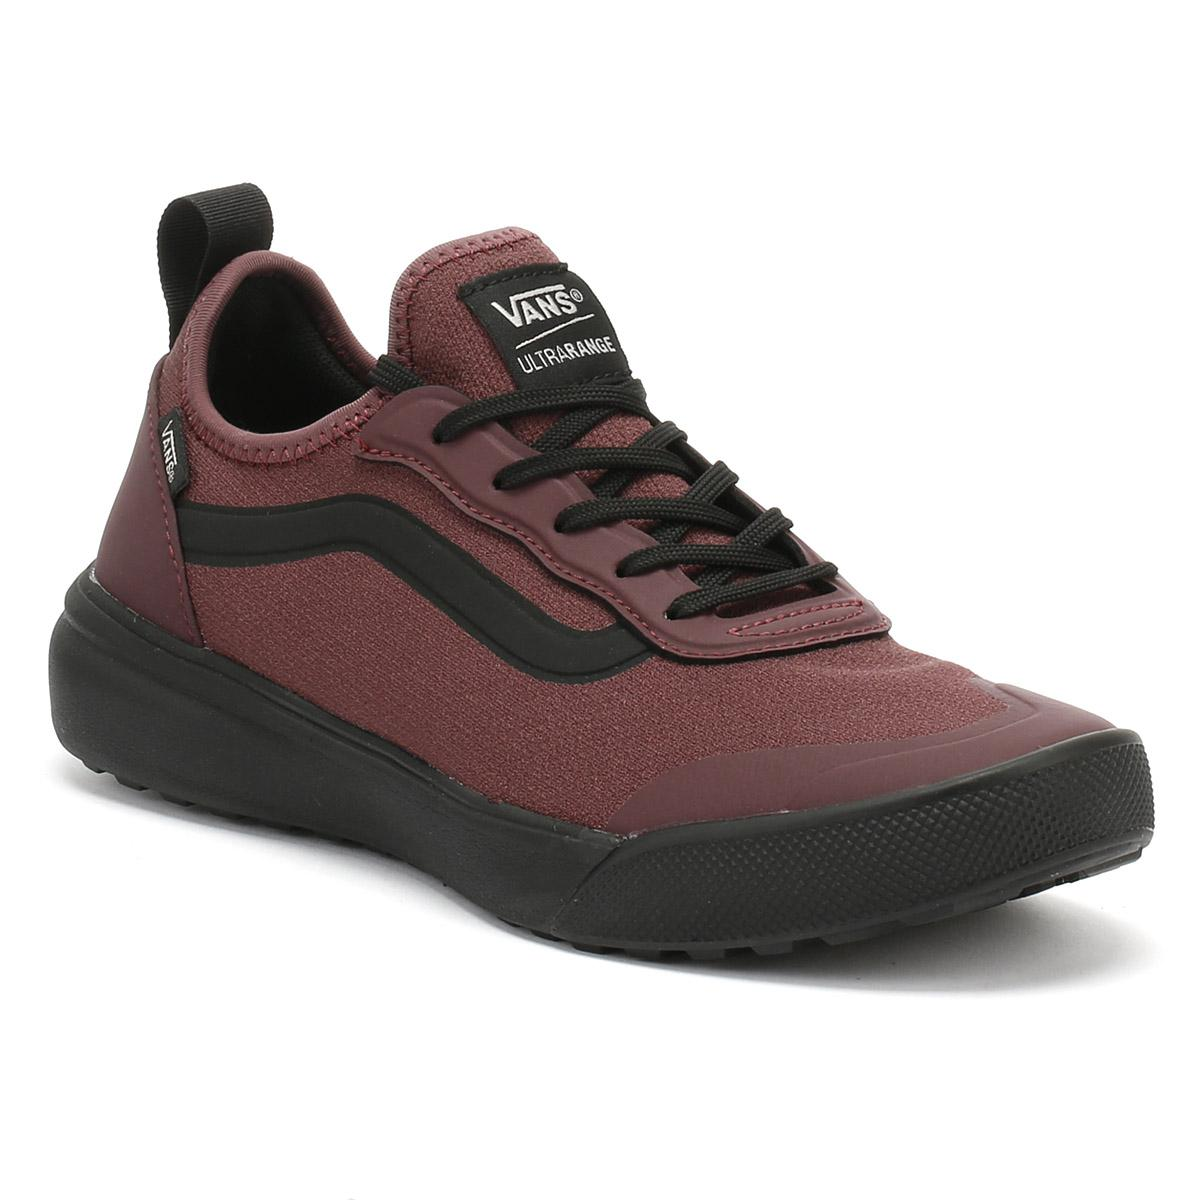 18e7e9092b Lyst - Vans Catawba Grape Burgundy   Black Ultrarange Ac Trainers ...